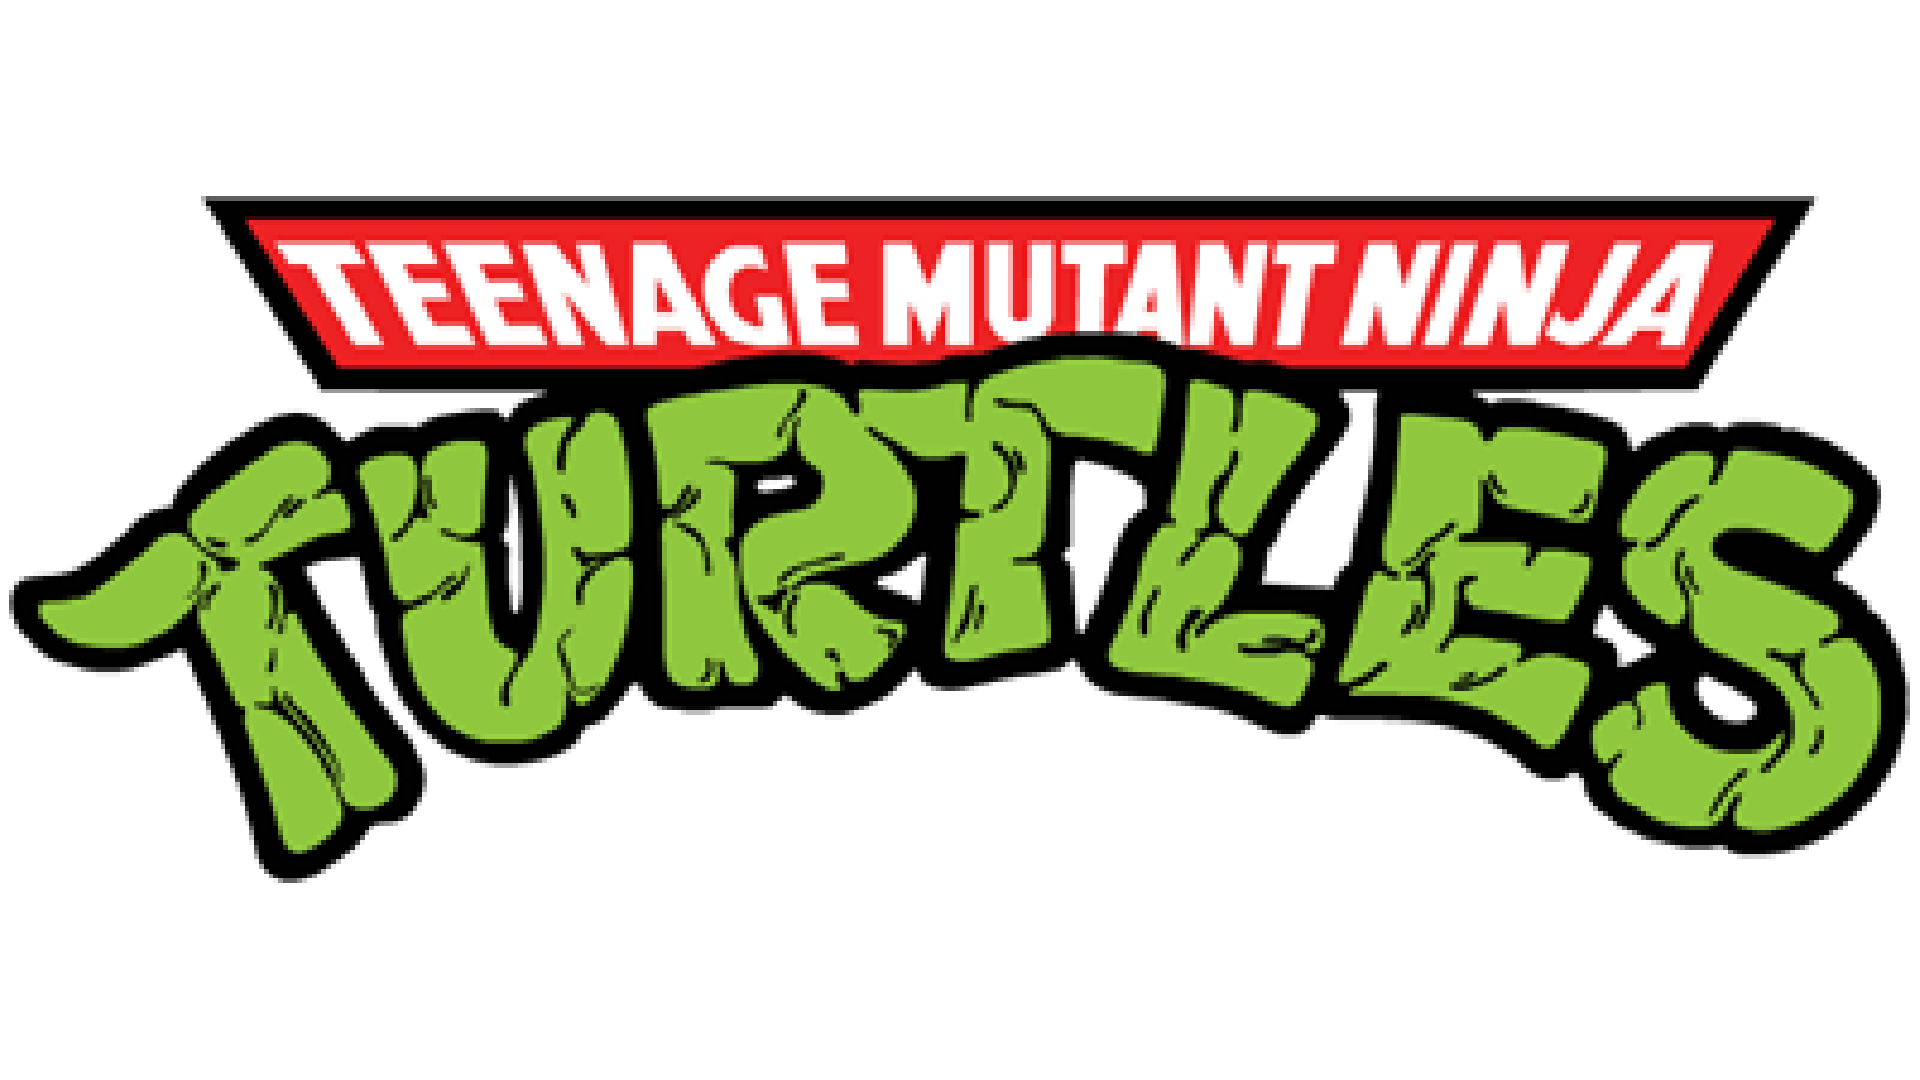 Teenage Mutant Ninja Turtles (Arcade) Logo